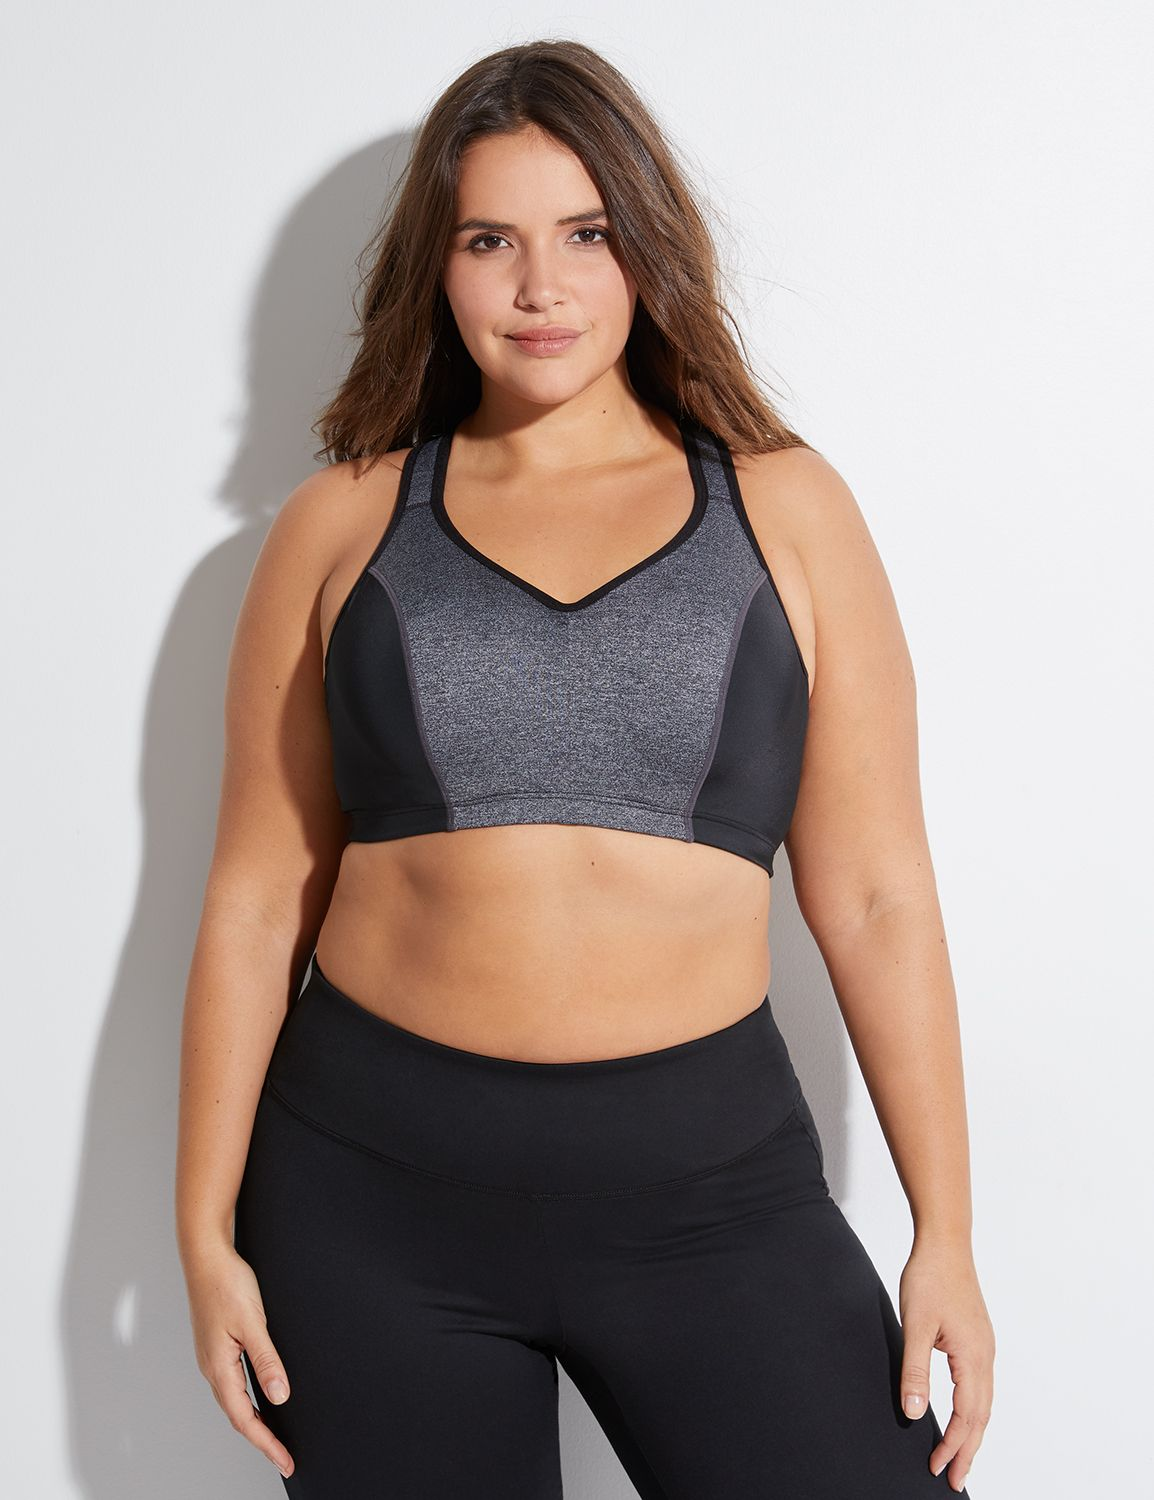 Lane Bryant Womens High-Impact Molded Underwire Sport Bra 44F Black And Marl Grey